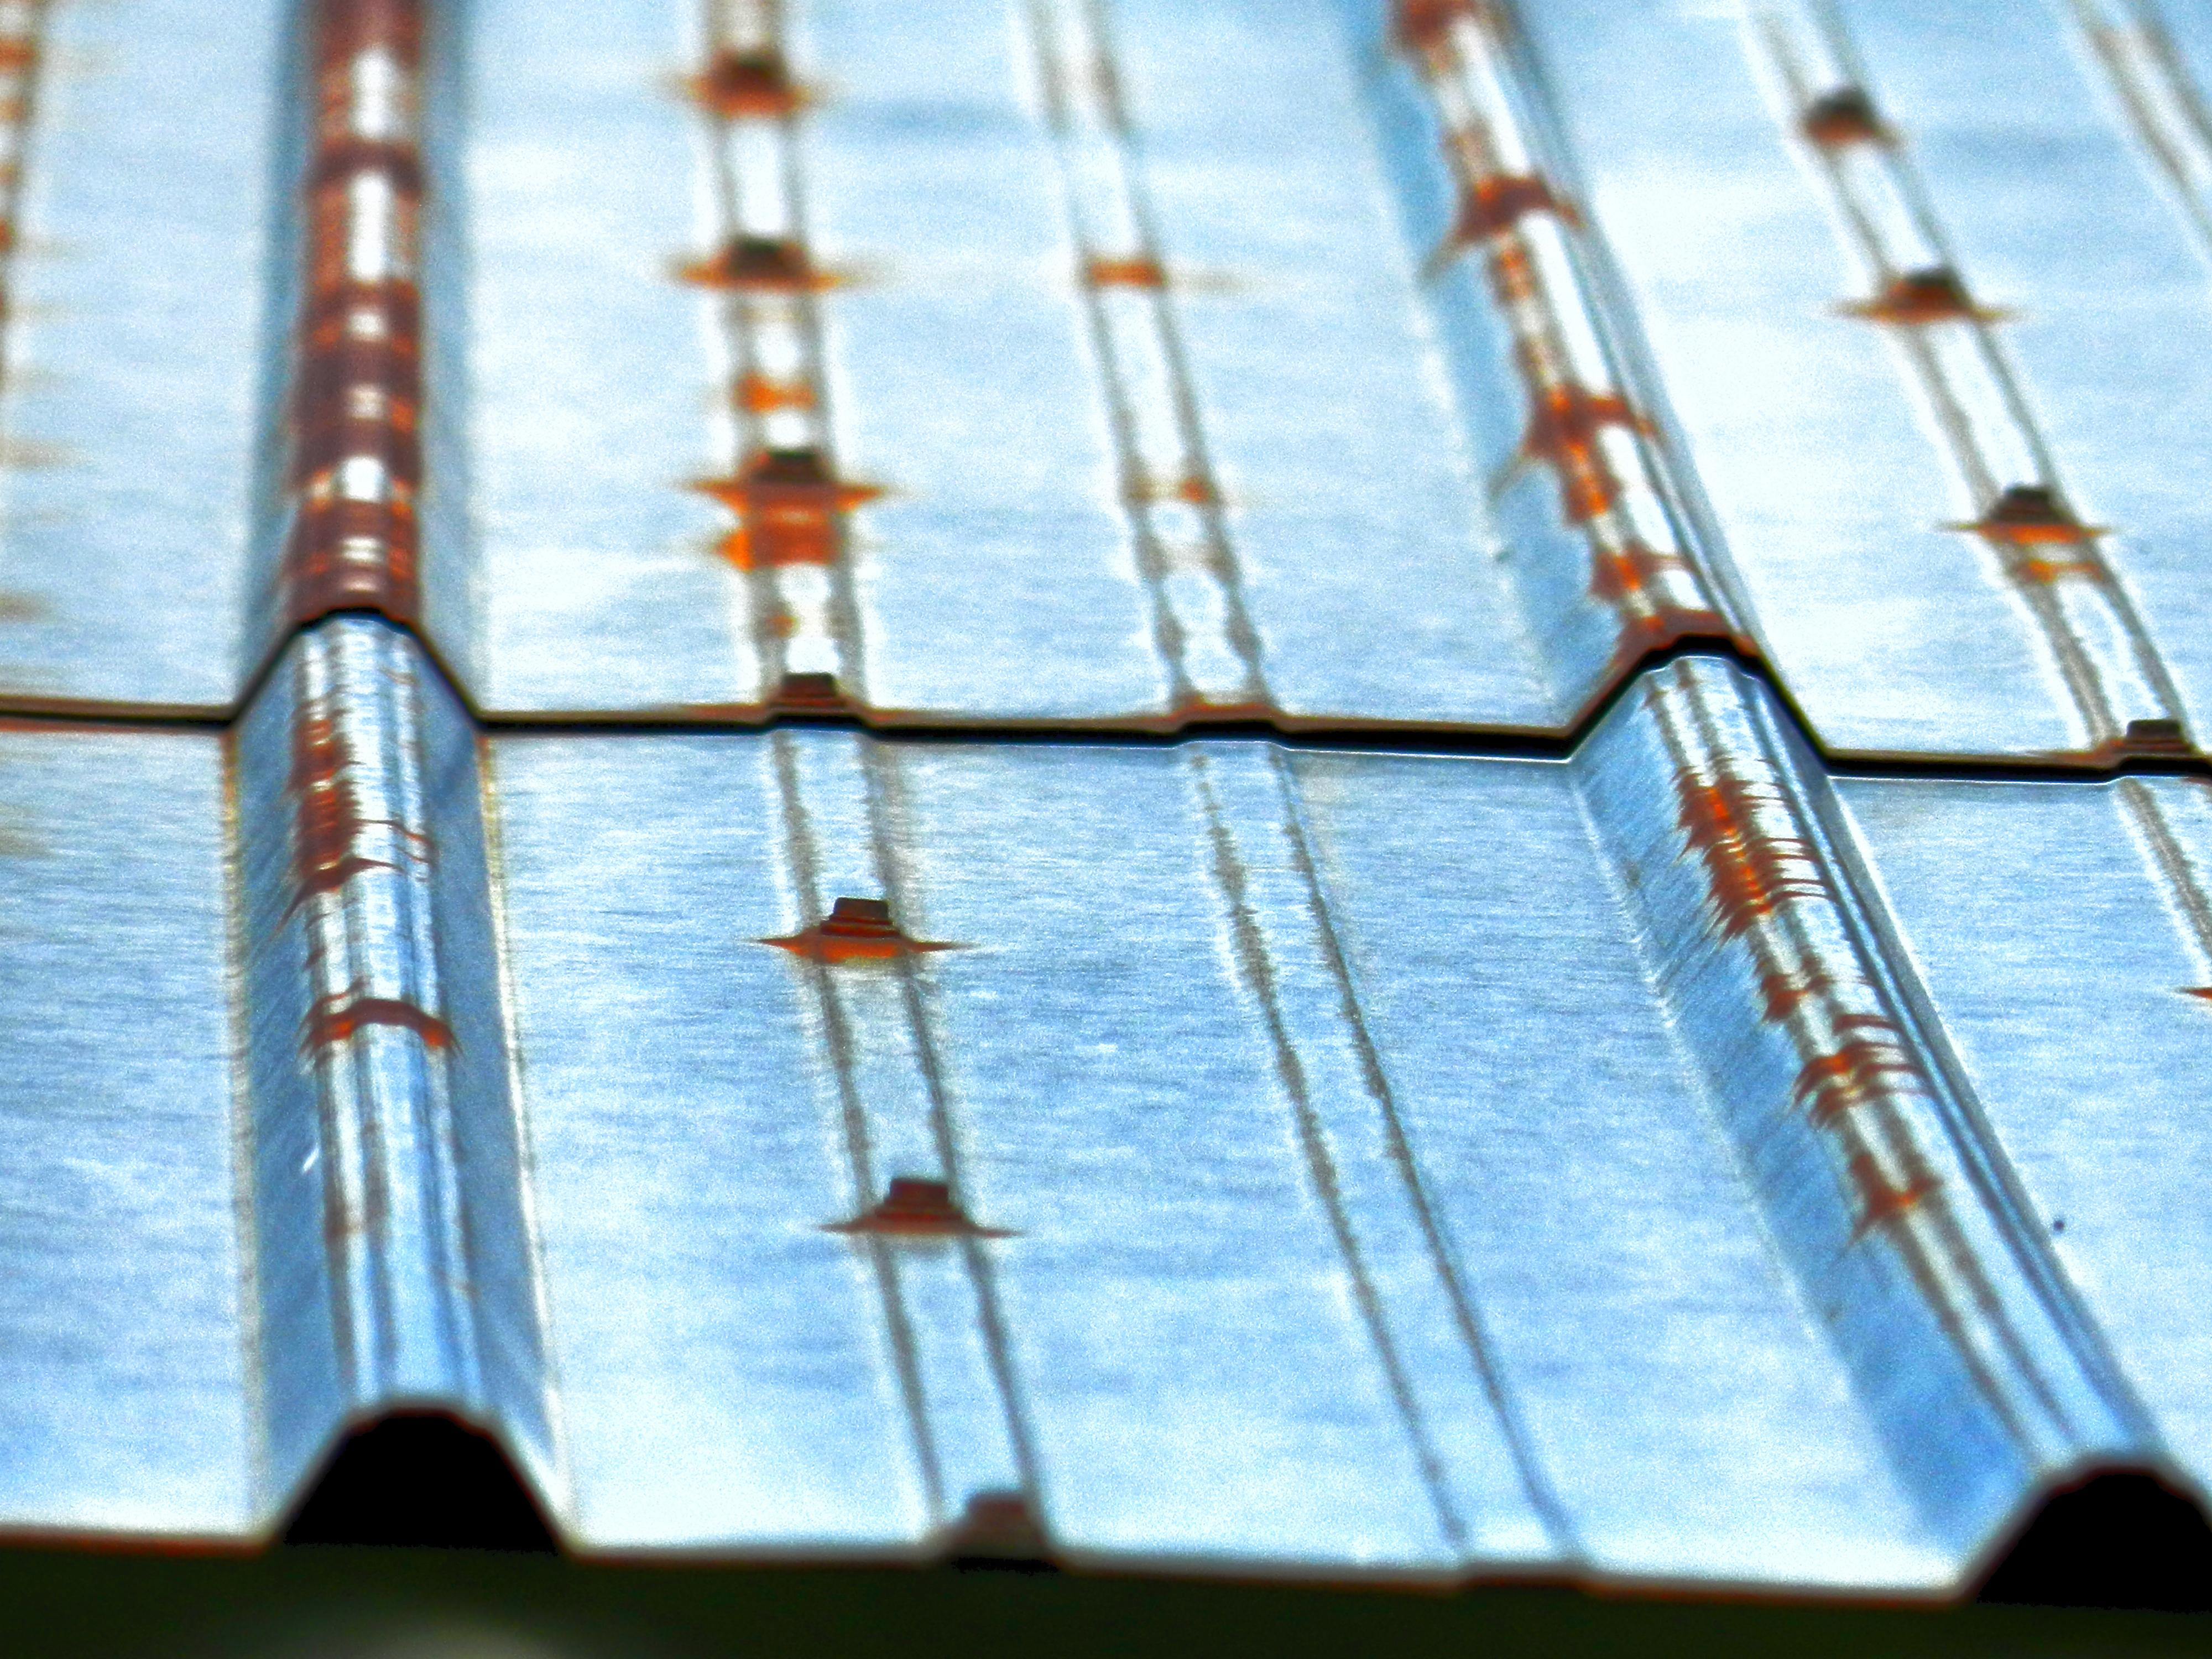 dixieland metals of alabama explains why metal roofing is so